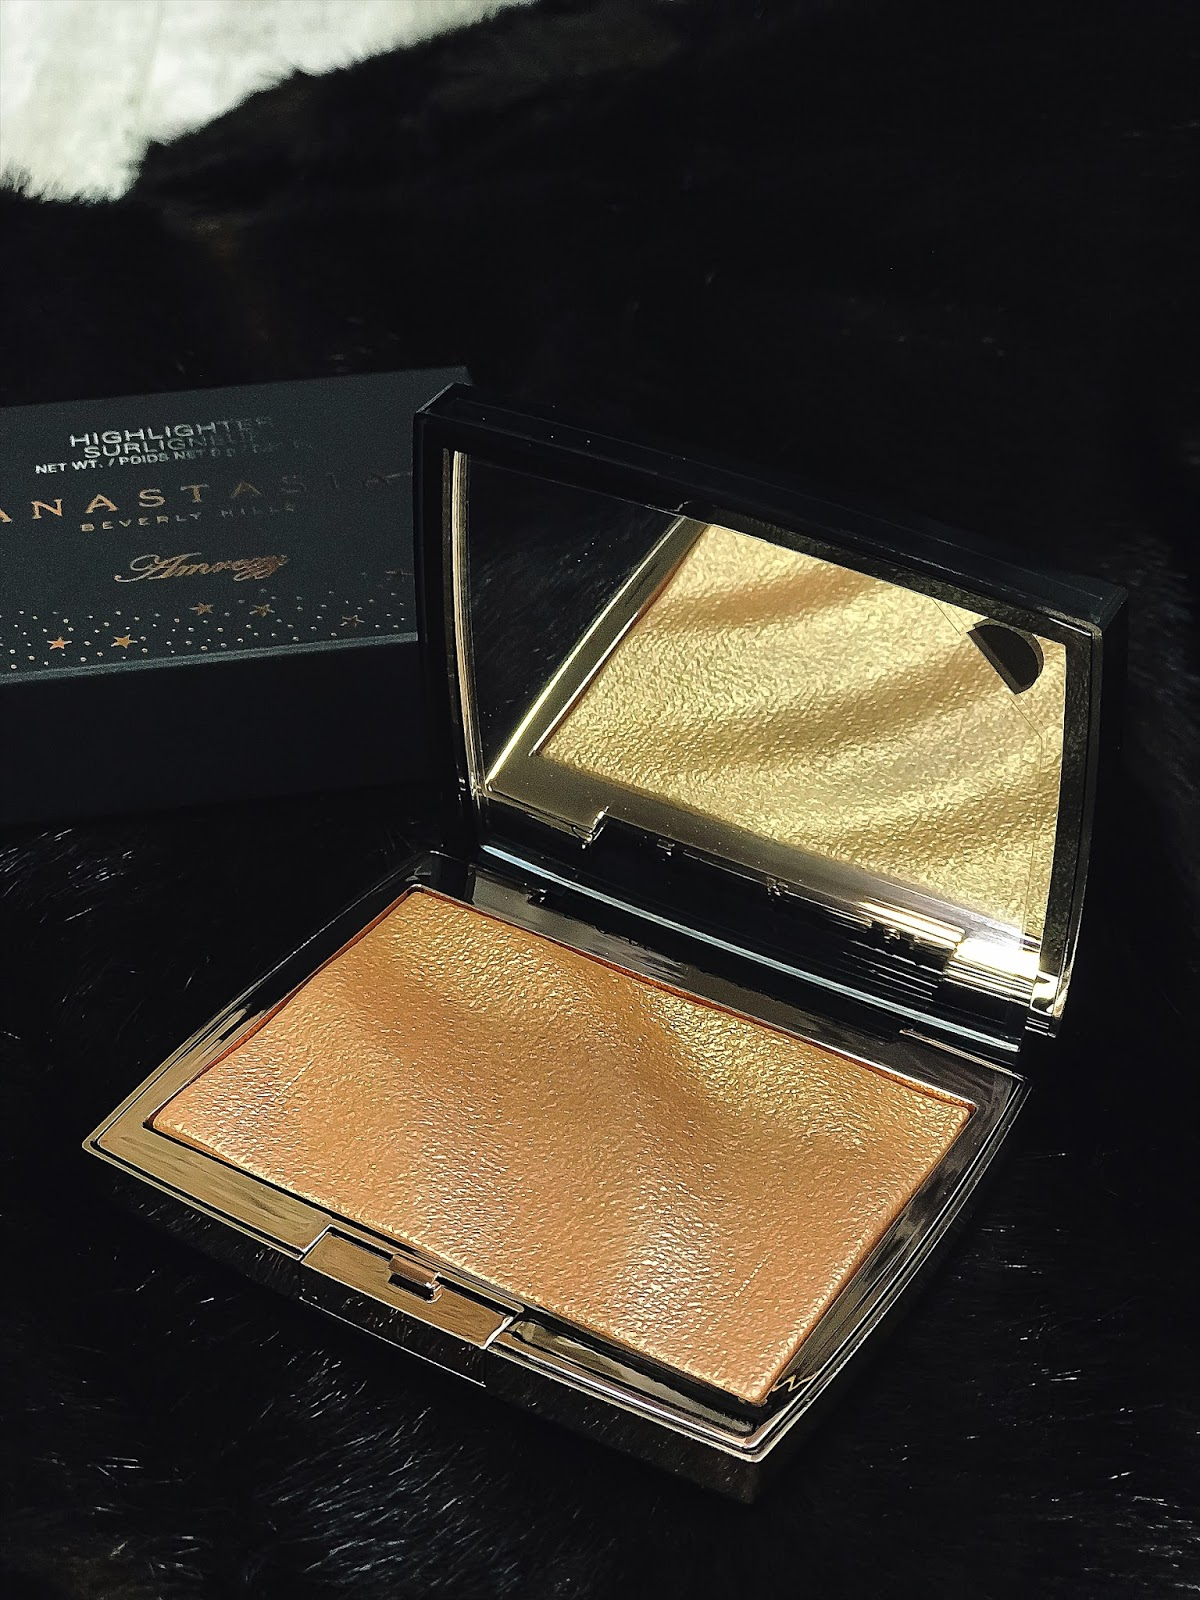 abh x amrezy highlighter review